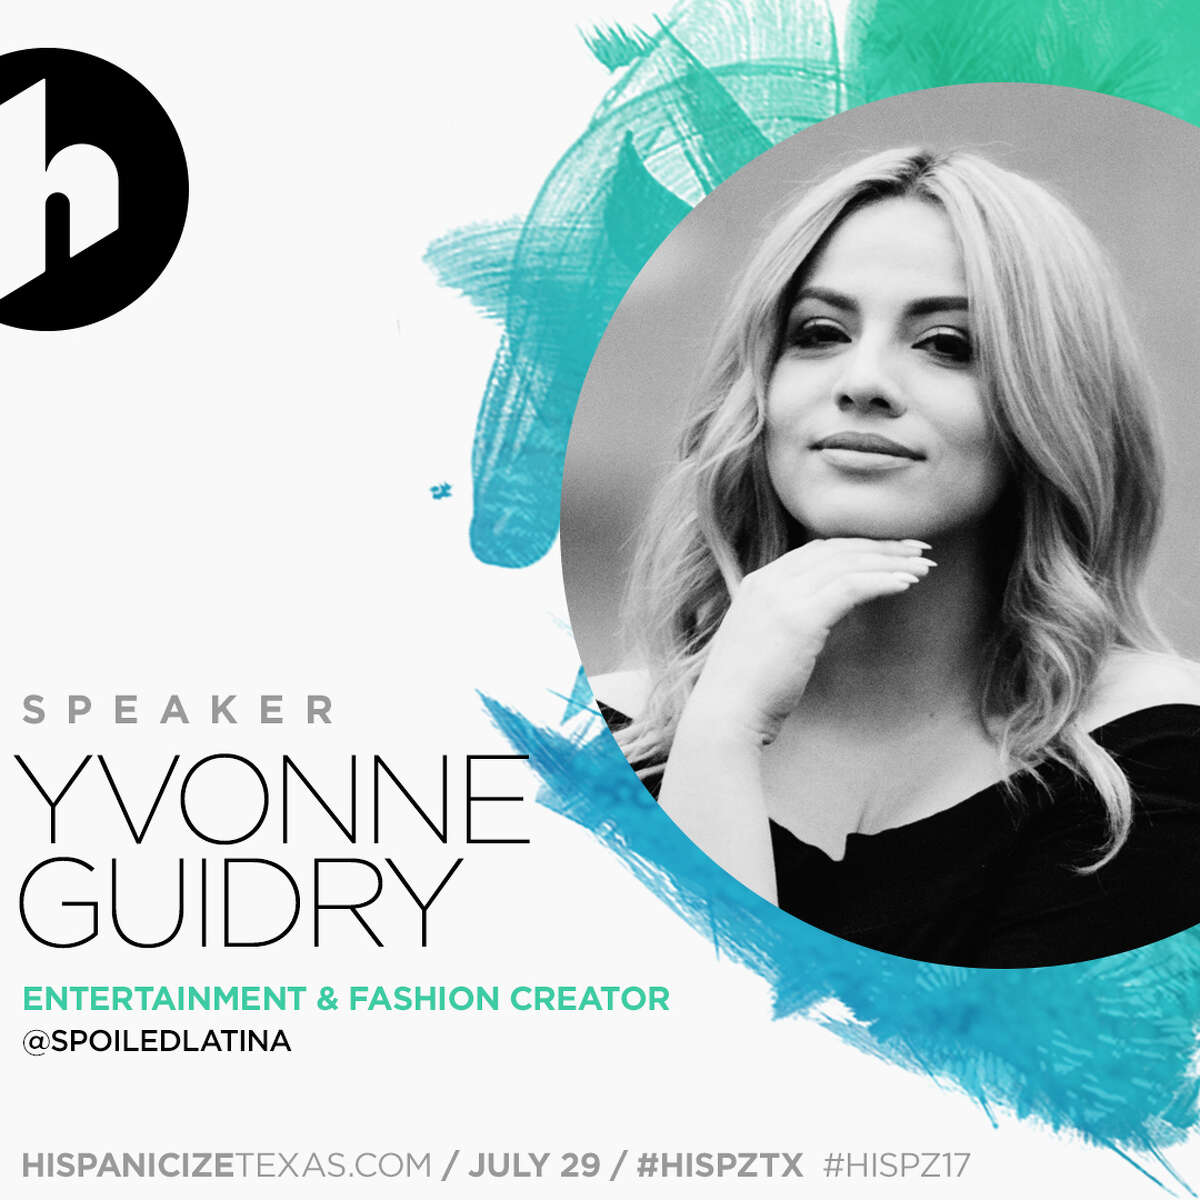 Hispanicize Texasis part of the largest annual events for Latino trendsetters and newsmakers in digital content creation, journalism, marketing, entertainment and tech entrepreneurship.